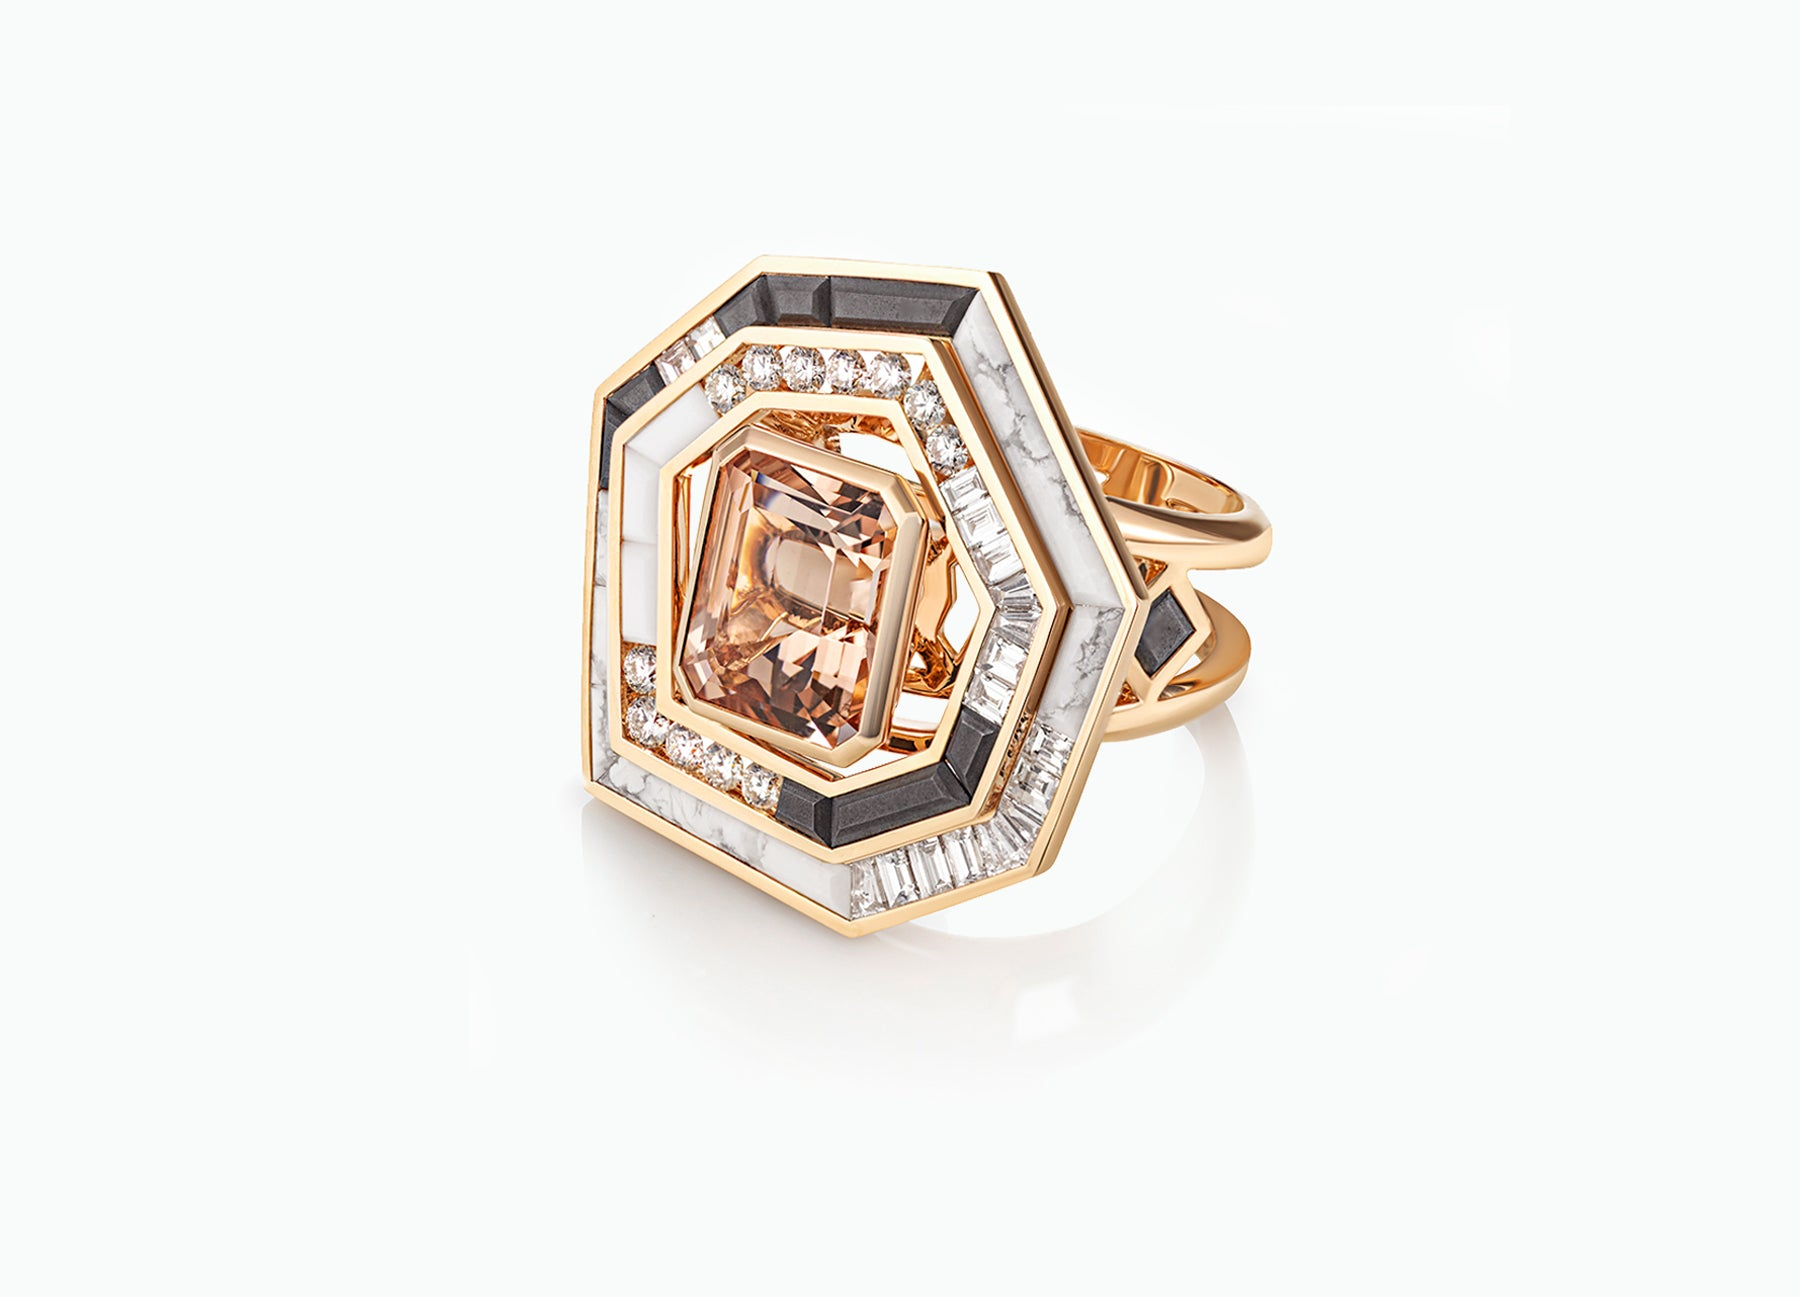 STELLAR DUSK MORGANITE COCKTAIL HALO RING